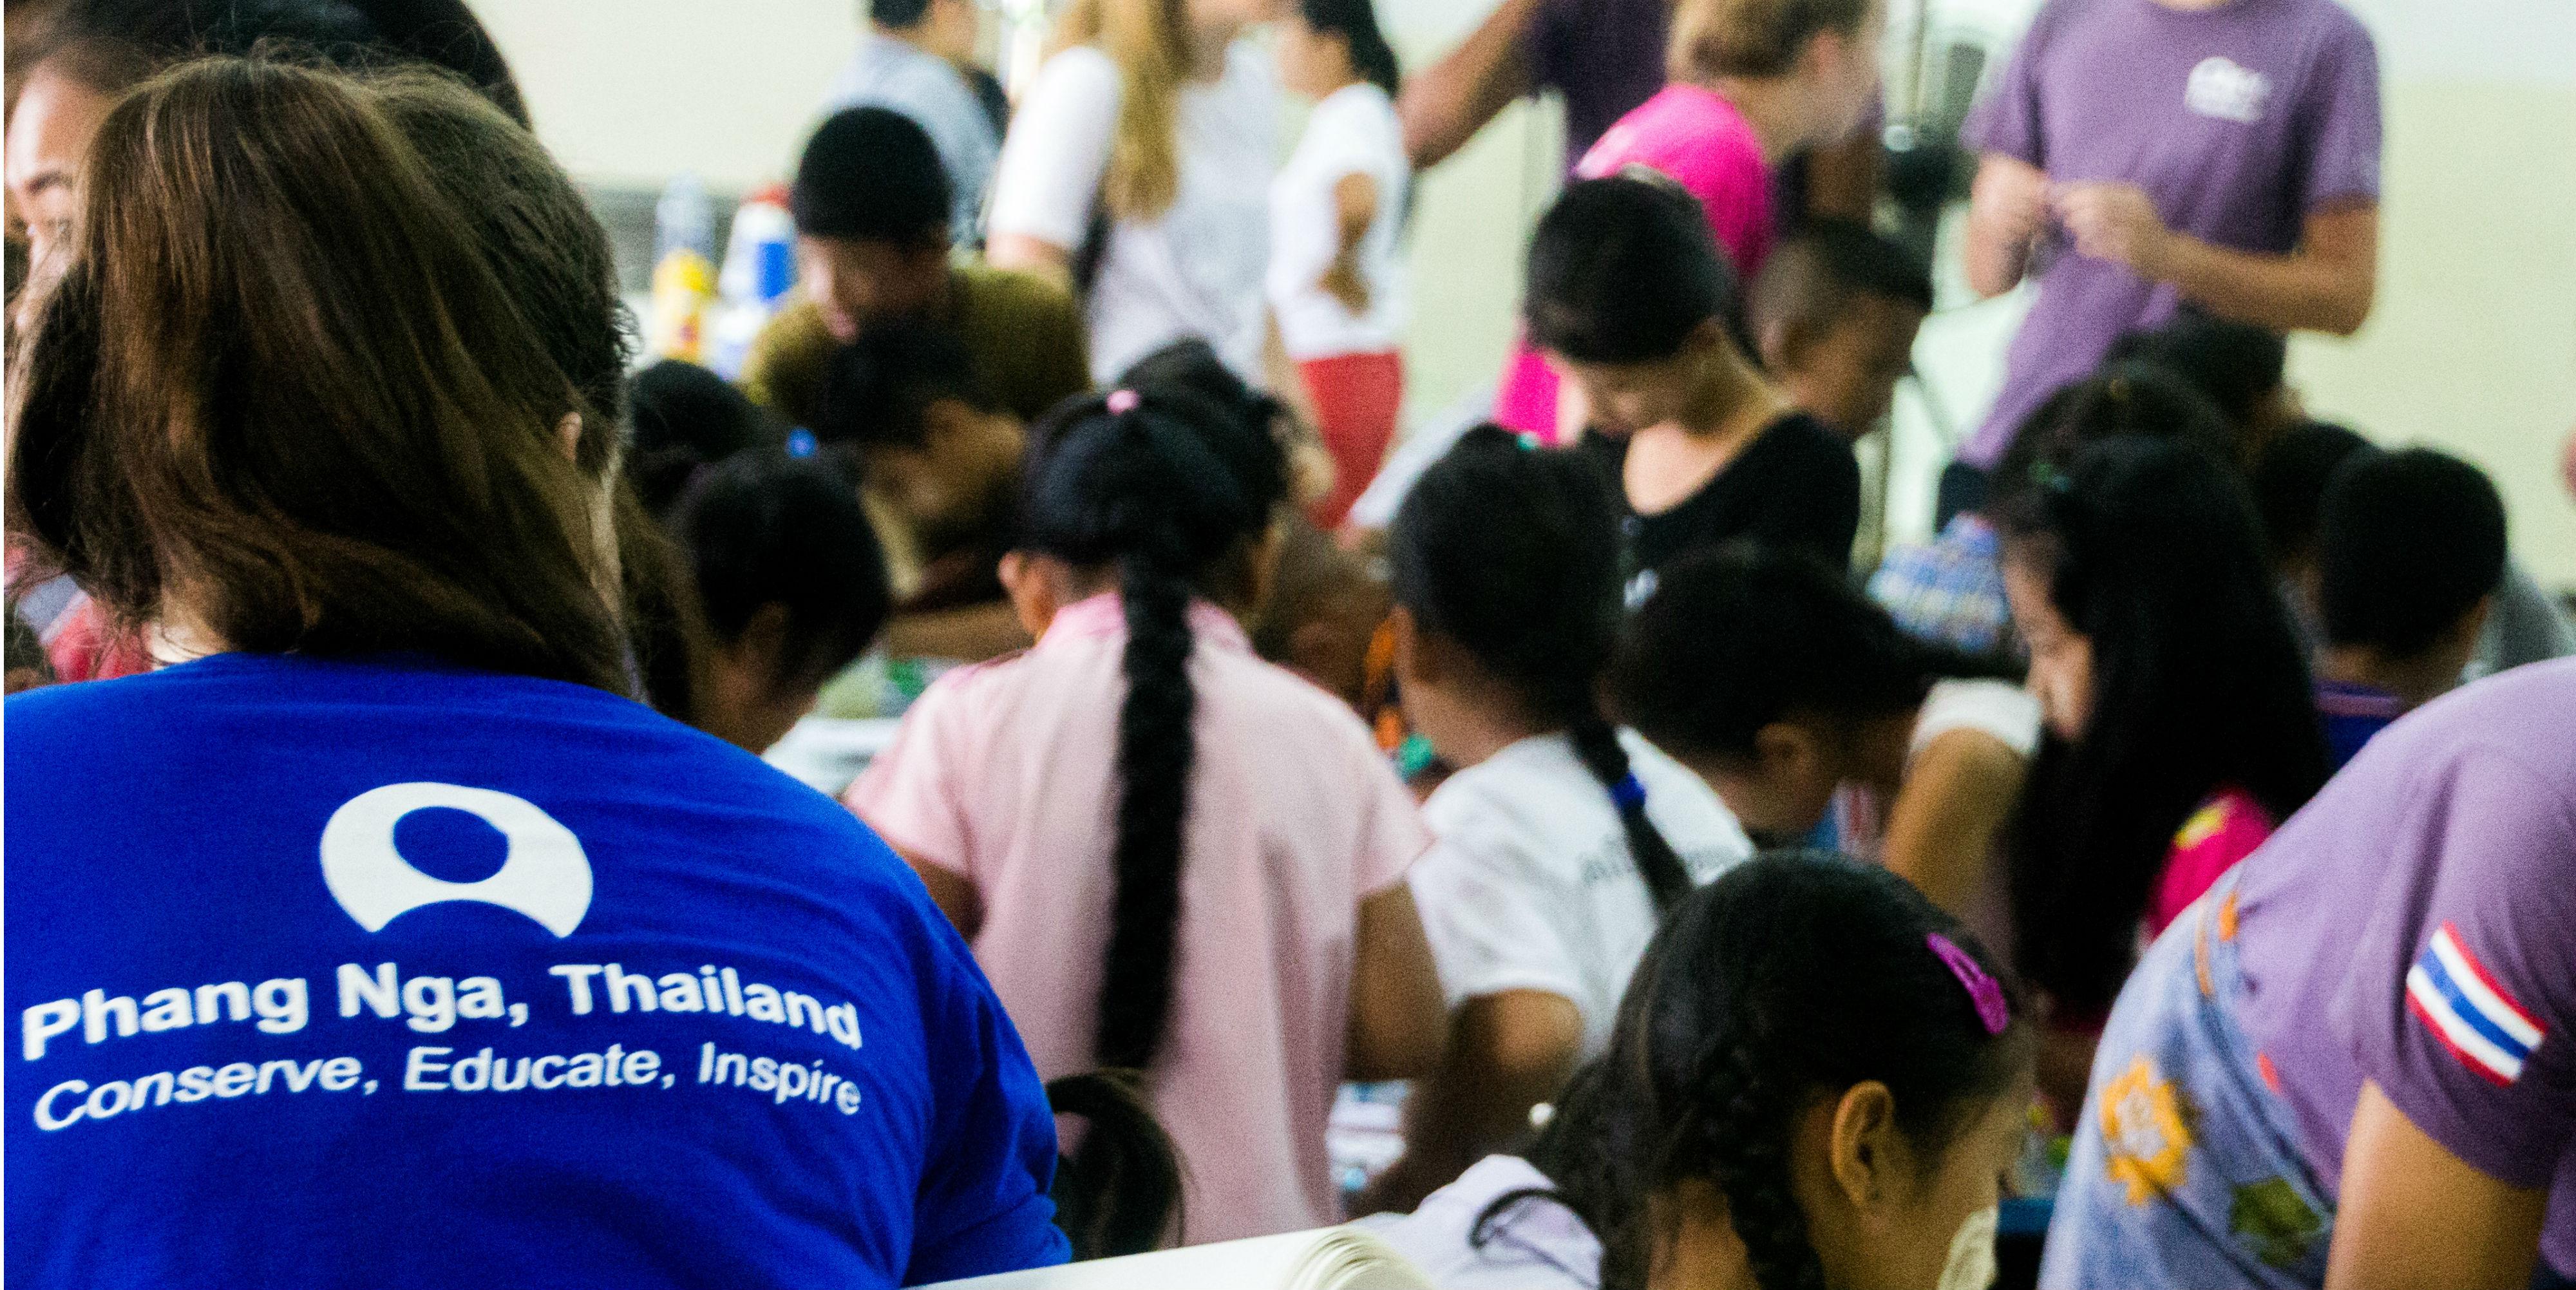 A GIV participant works toward gaining her TEFL certification in Phang Nga, Thailand.